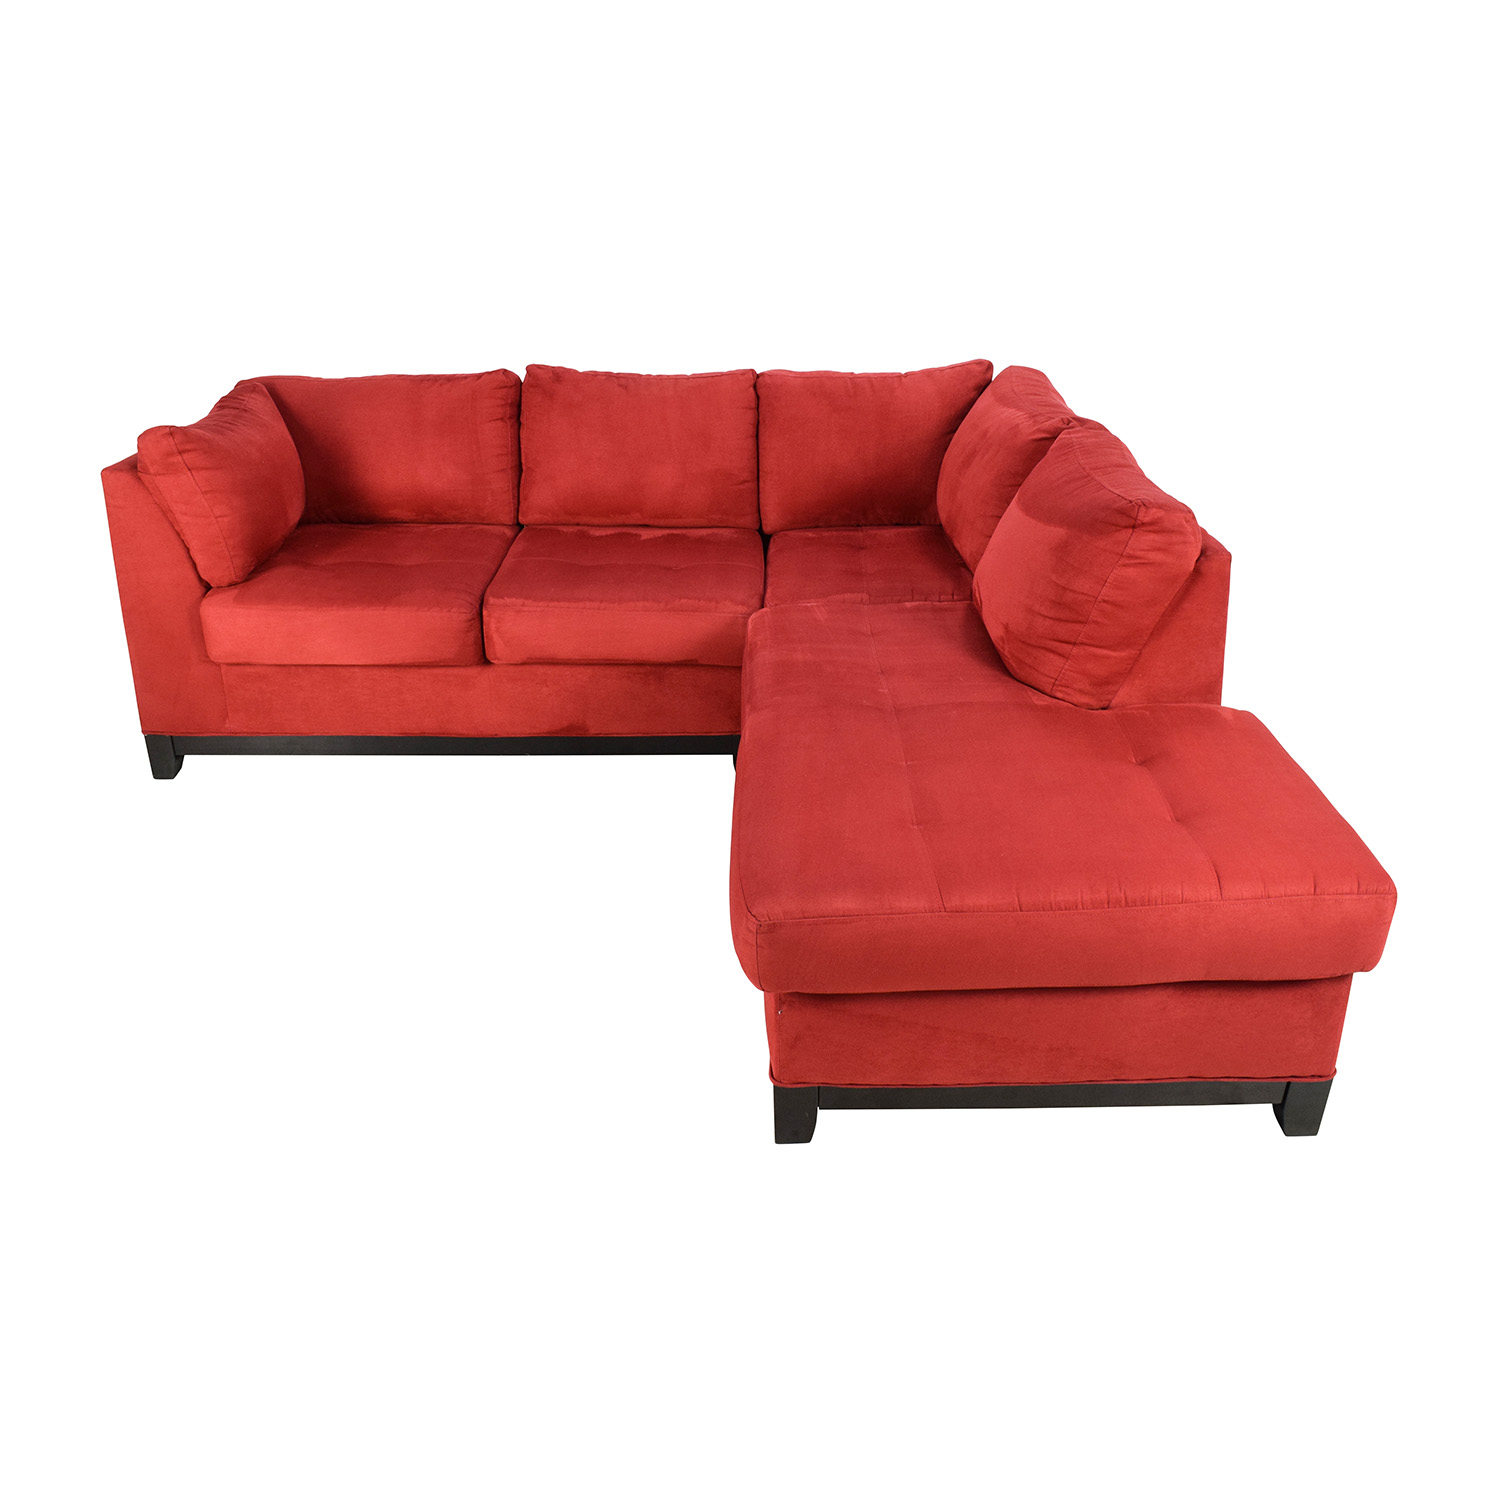 buy Raymour u0026 Flanigan Zella Red Sectional Raymour and Flanigan Sectionals  sc 1 st  Furnishare : raymour flanigan sectional - Sectionals, Sofas & Couches